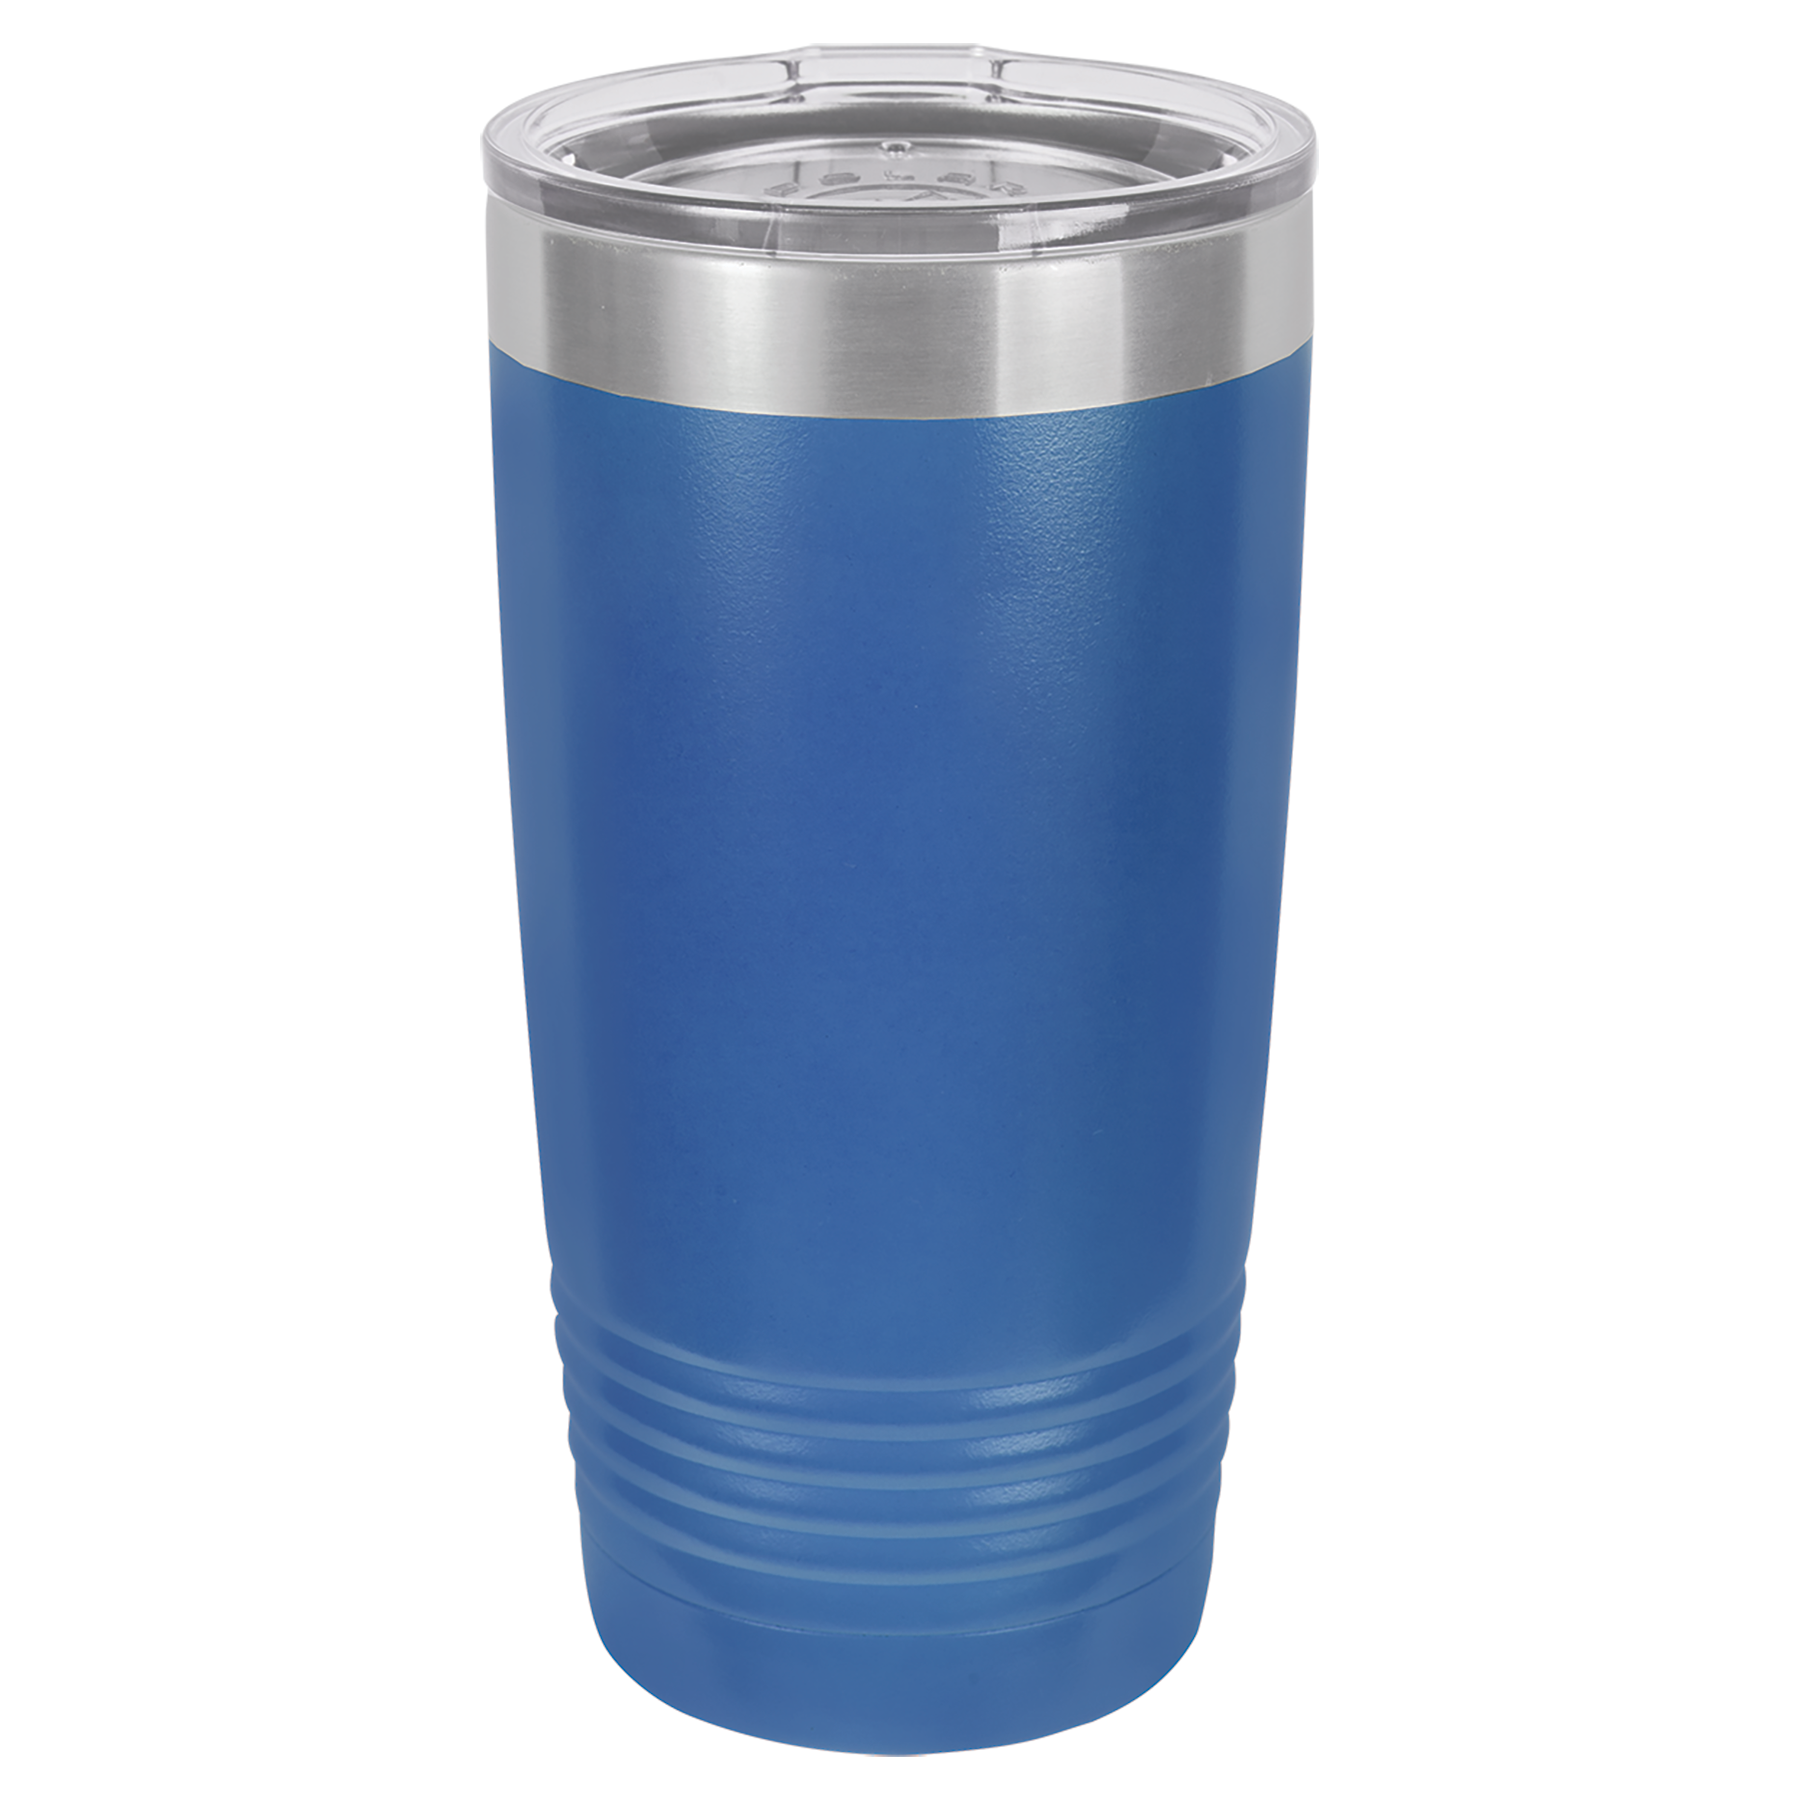 20 oz. Stainless Steel Tumblers